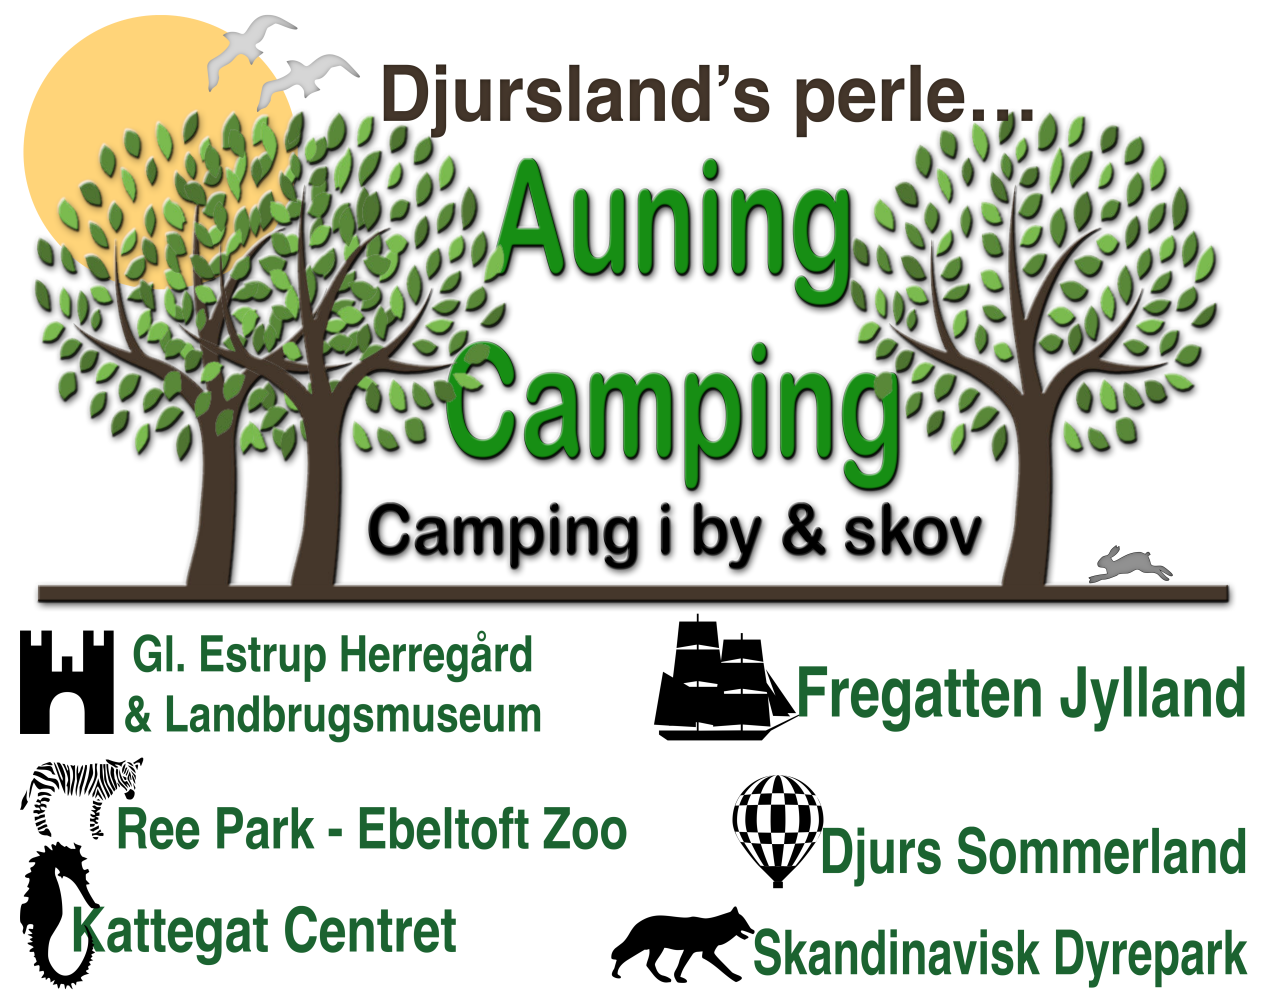 Auning-Camping